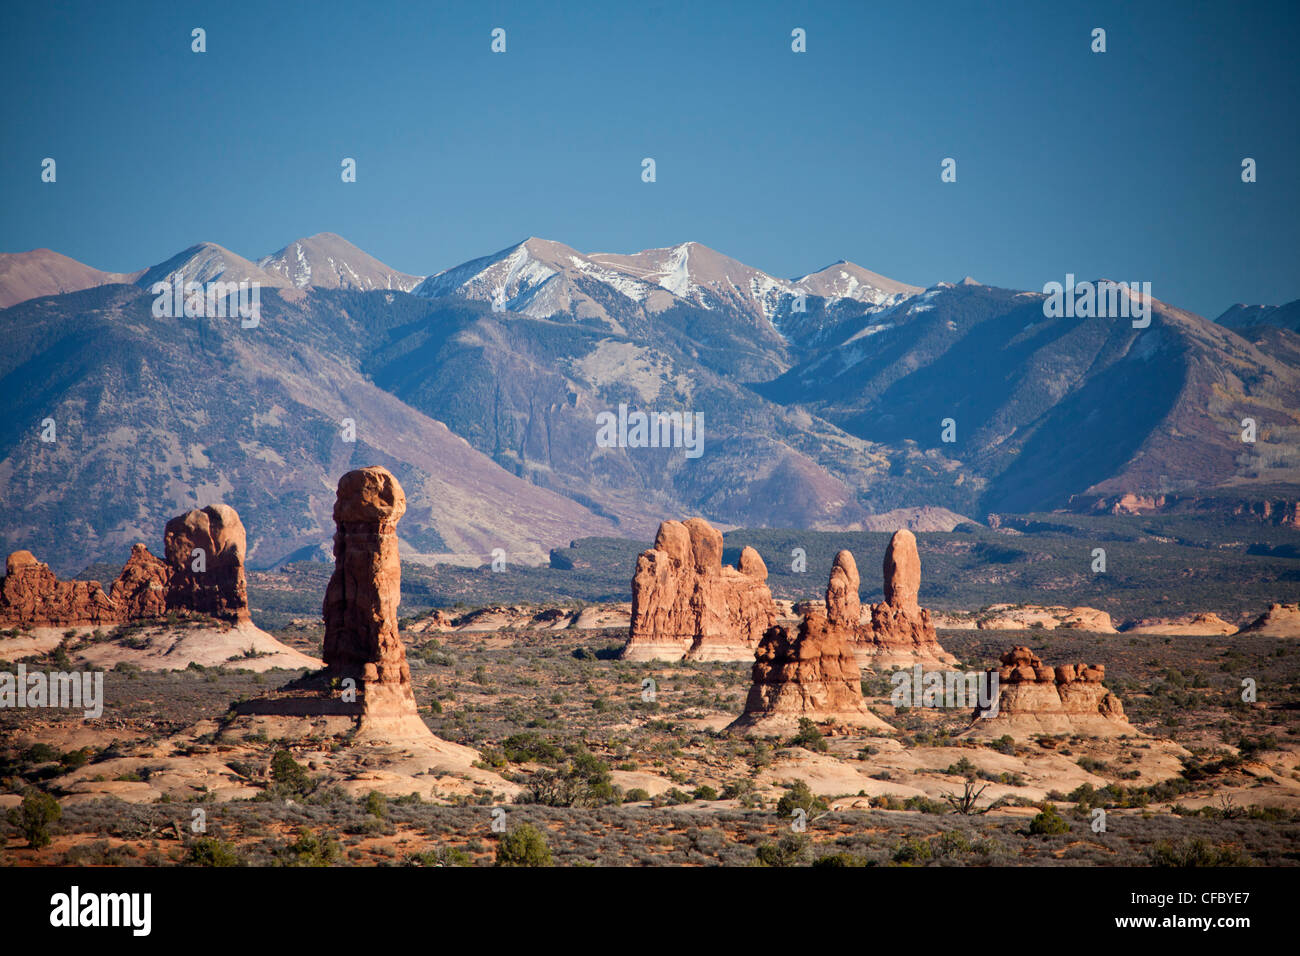 USA, United States, Amérique du Nord, l'Utah, Arches, Parc National, La Sal, montagnes, l'aventure, Photo Stock